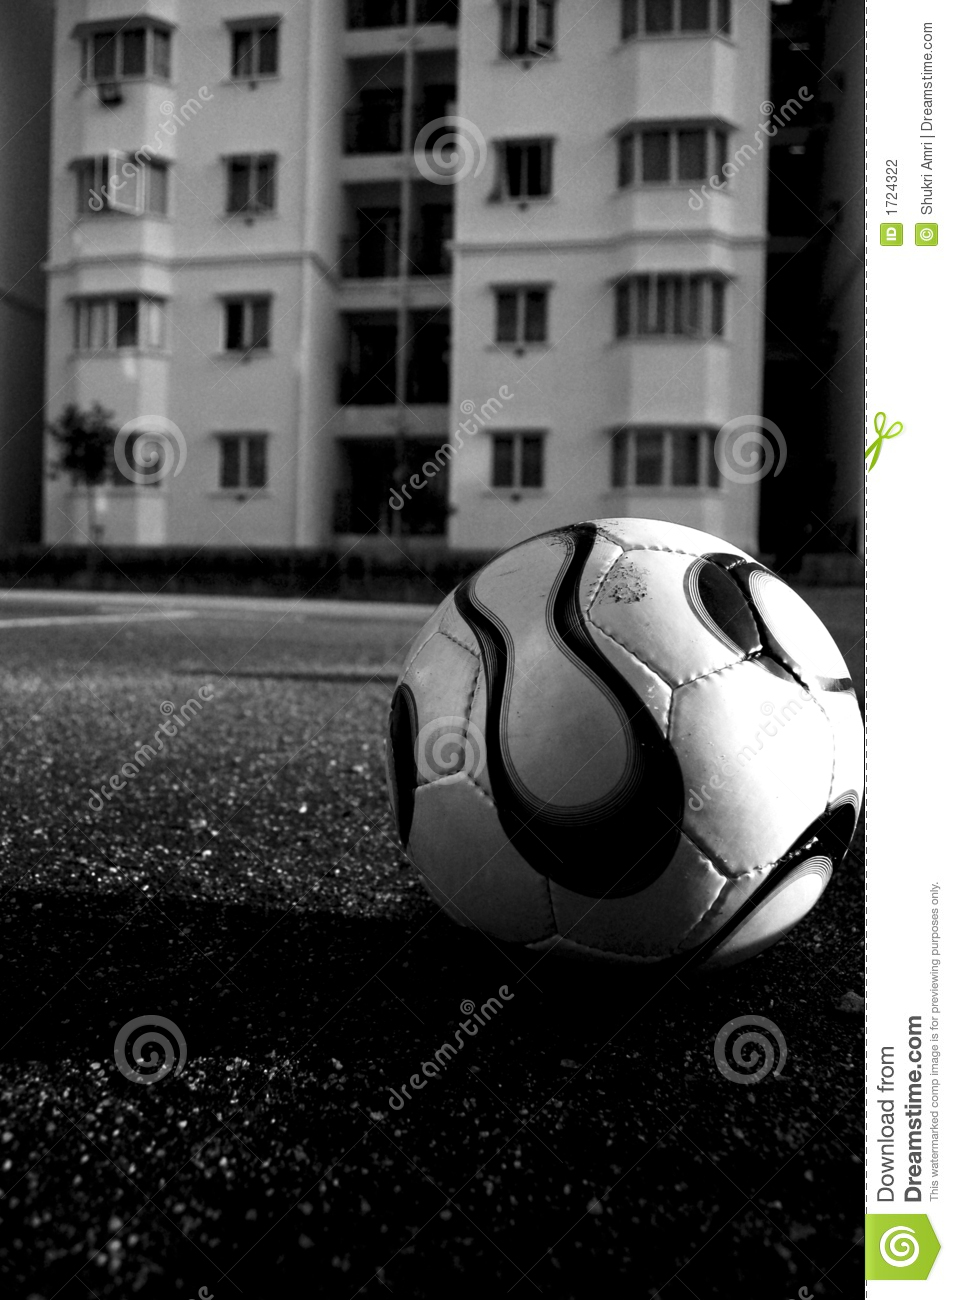 soccer ball in black and white stock photo image 1724322. Black Bedroom Furniture Sets. Home Design Ideas